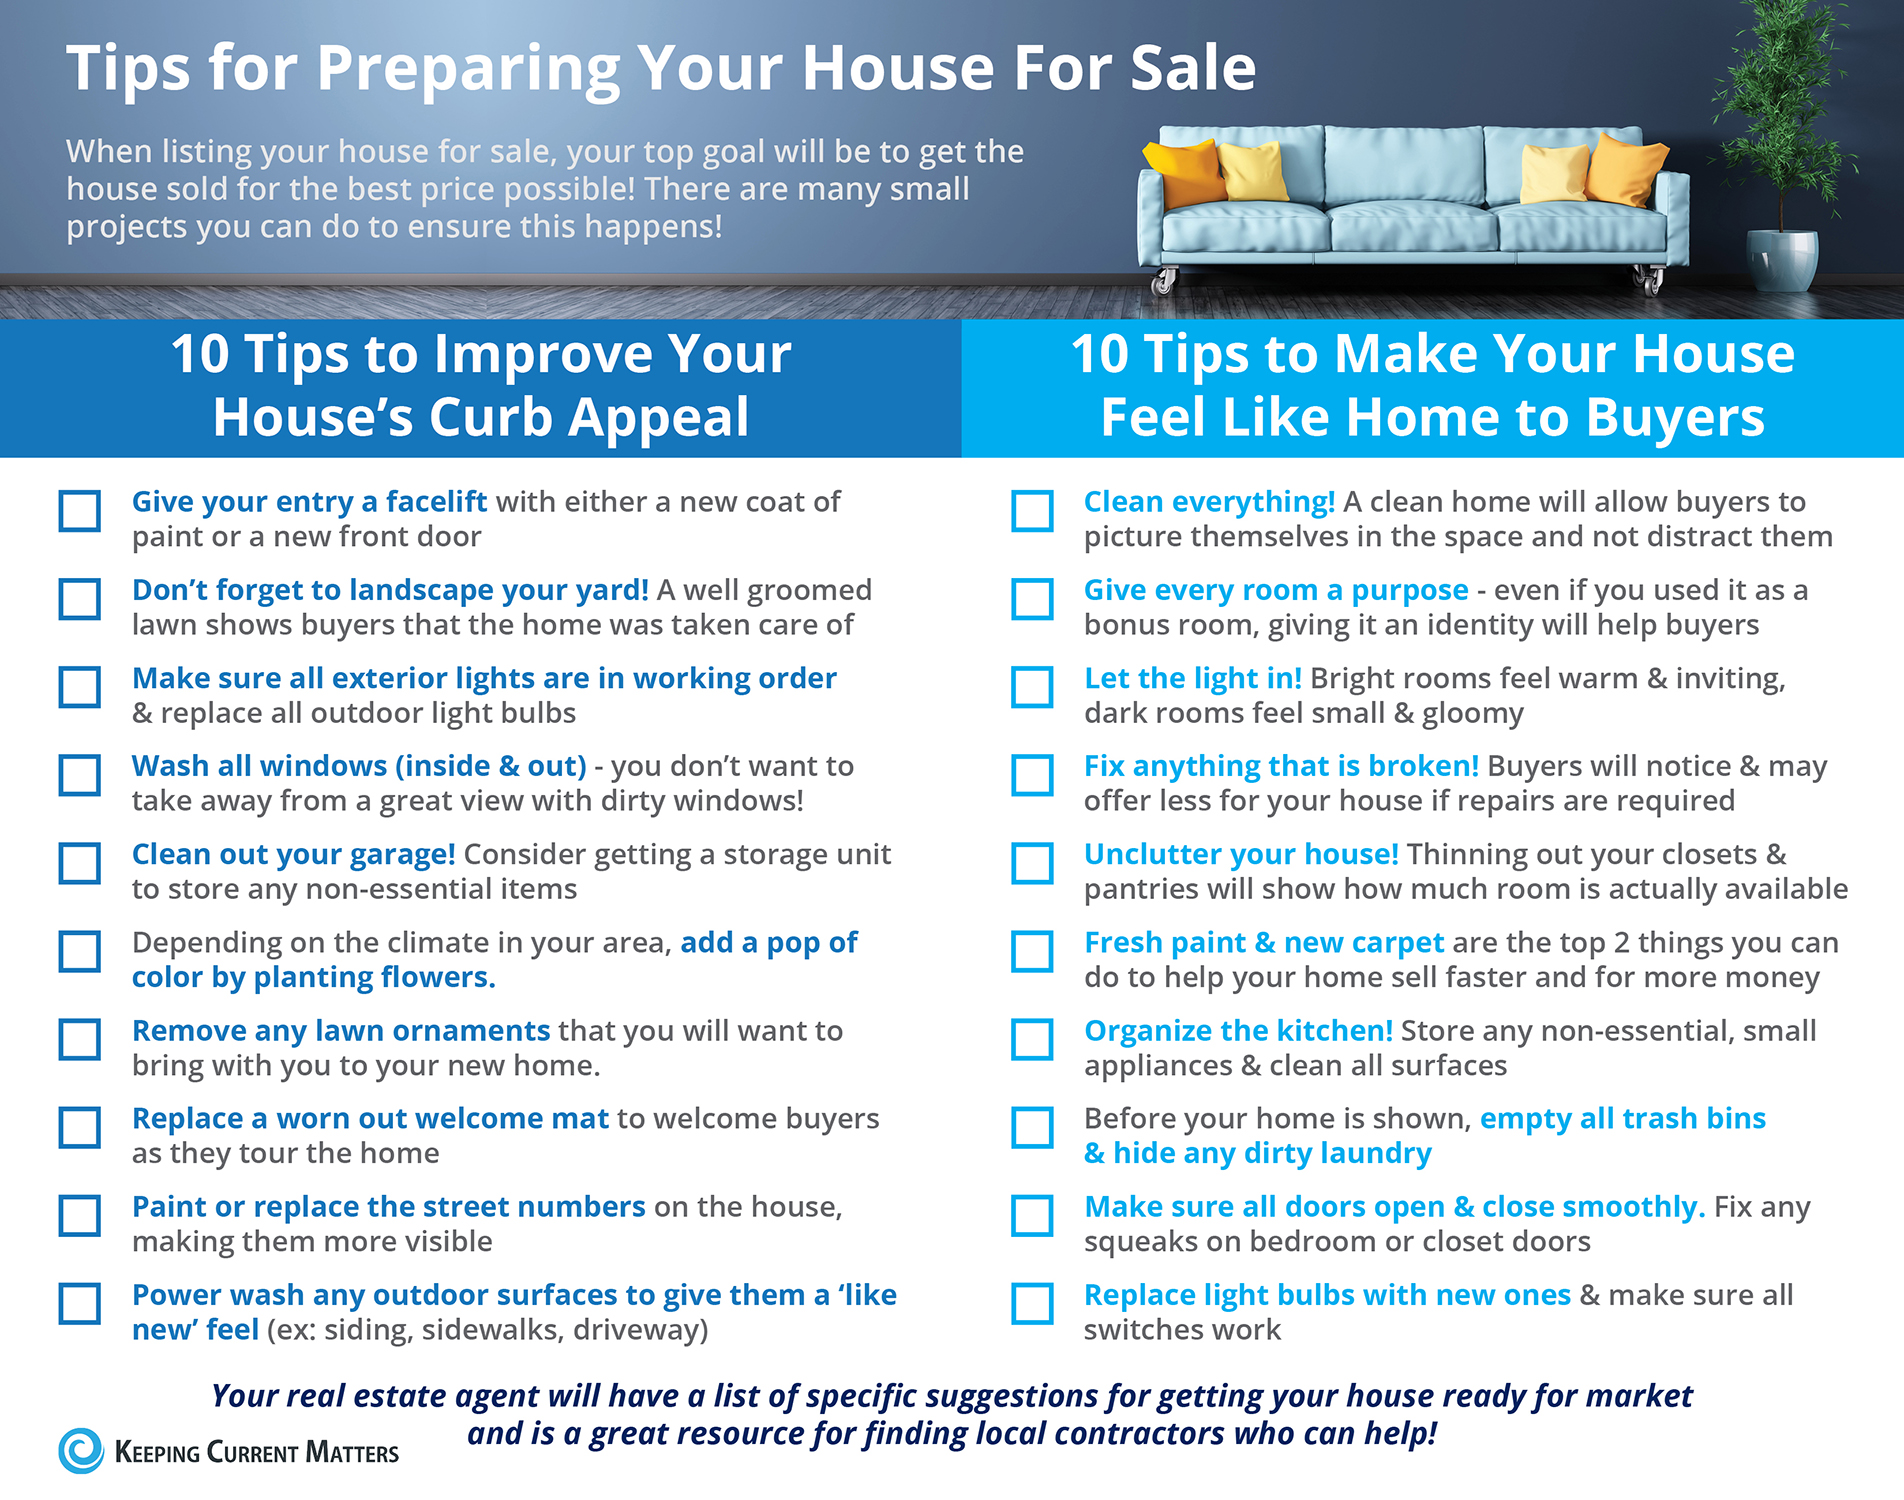 Tips For Preparing Your House For Sale [infographic]  Keeping Current  Matters